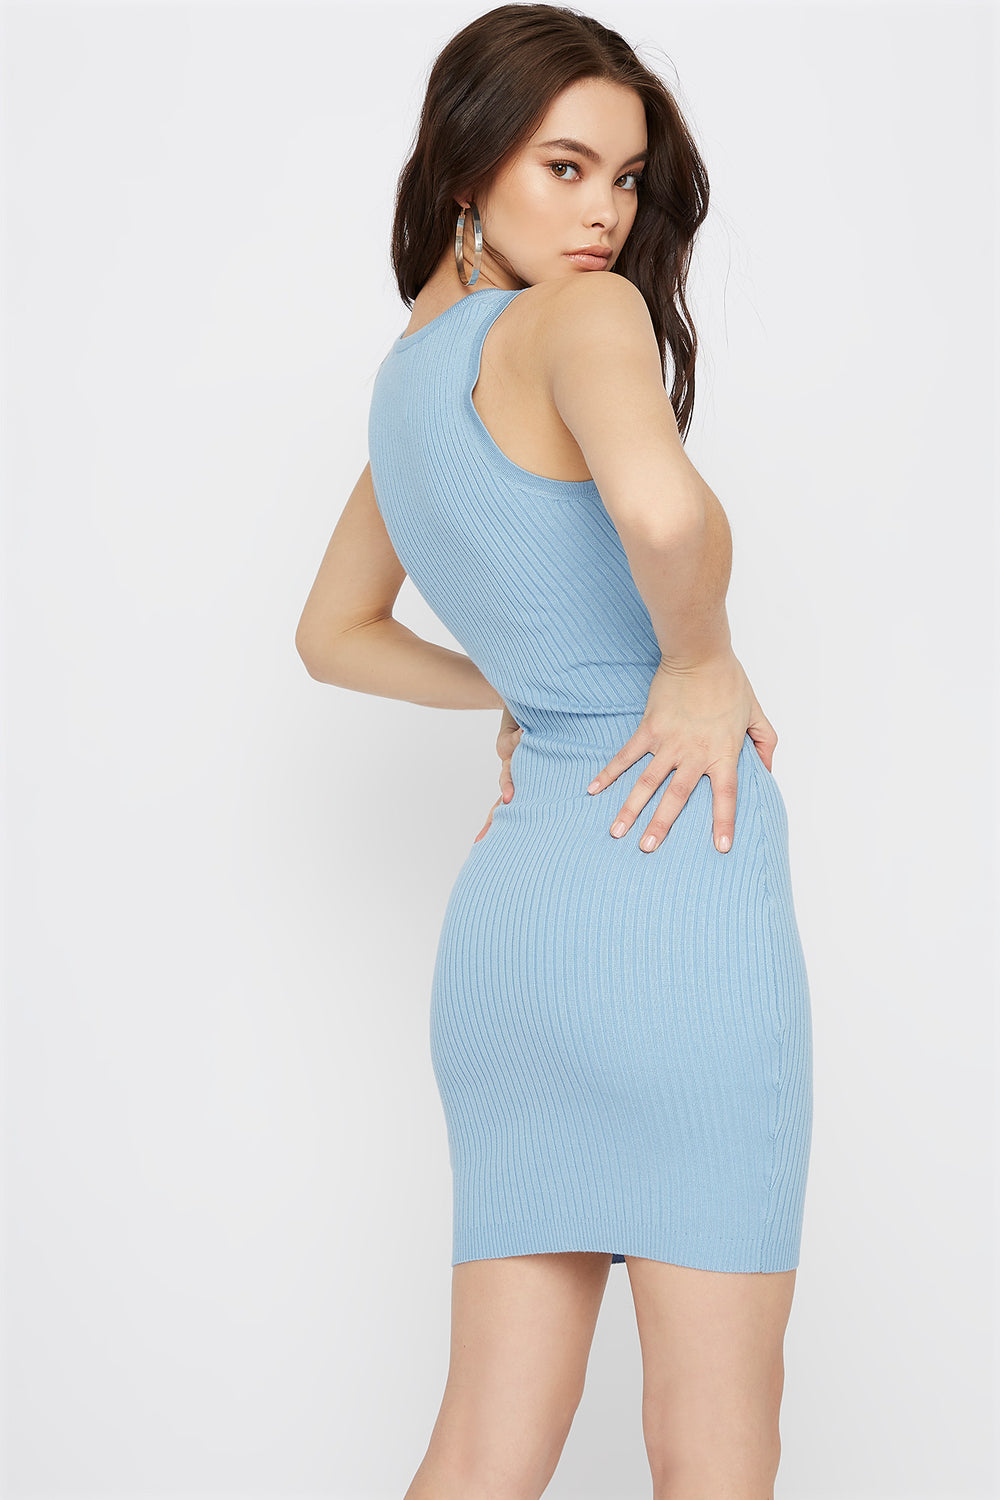 Ribbed Button-Up Bodycon Mini Dress Light Blue